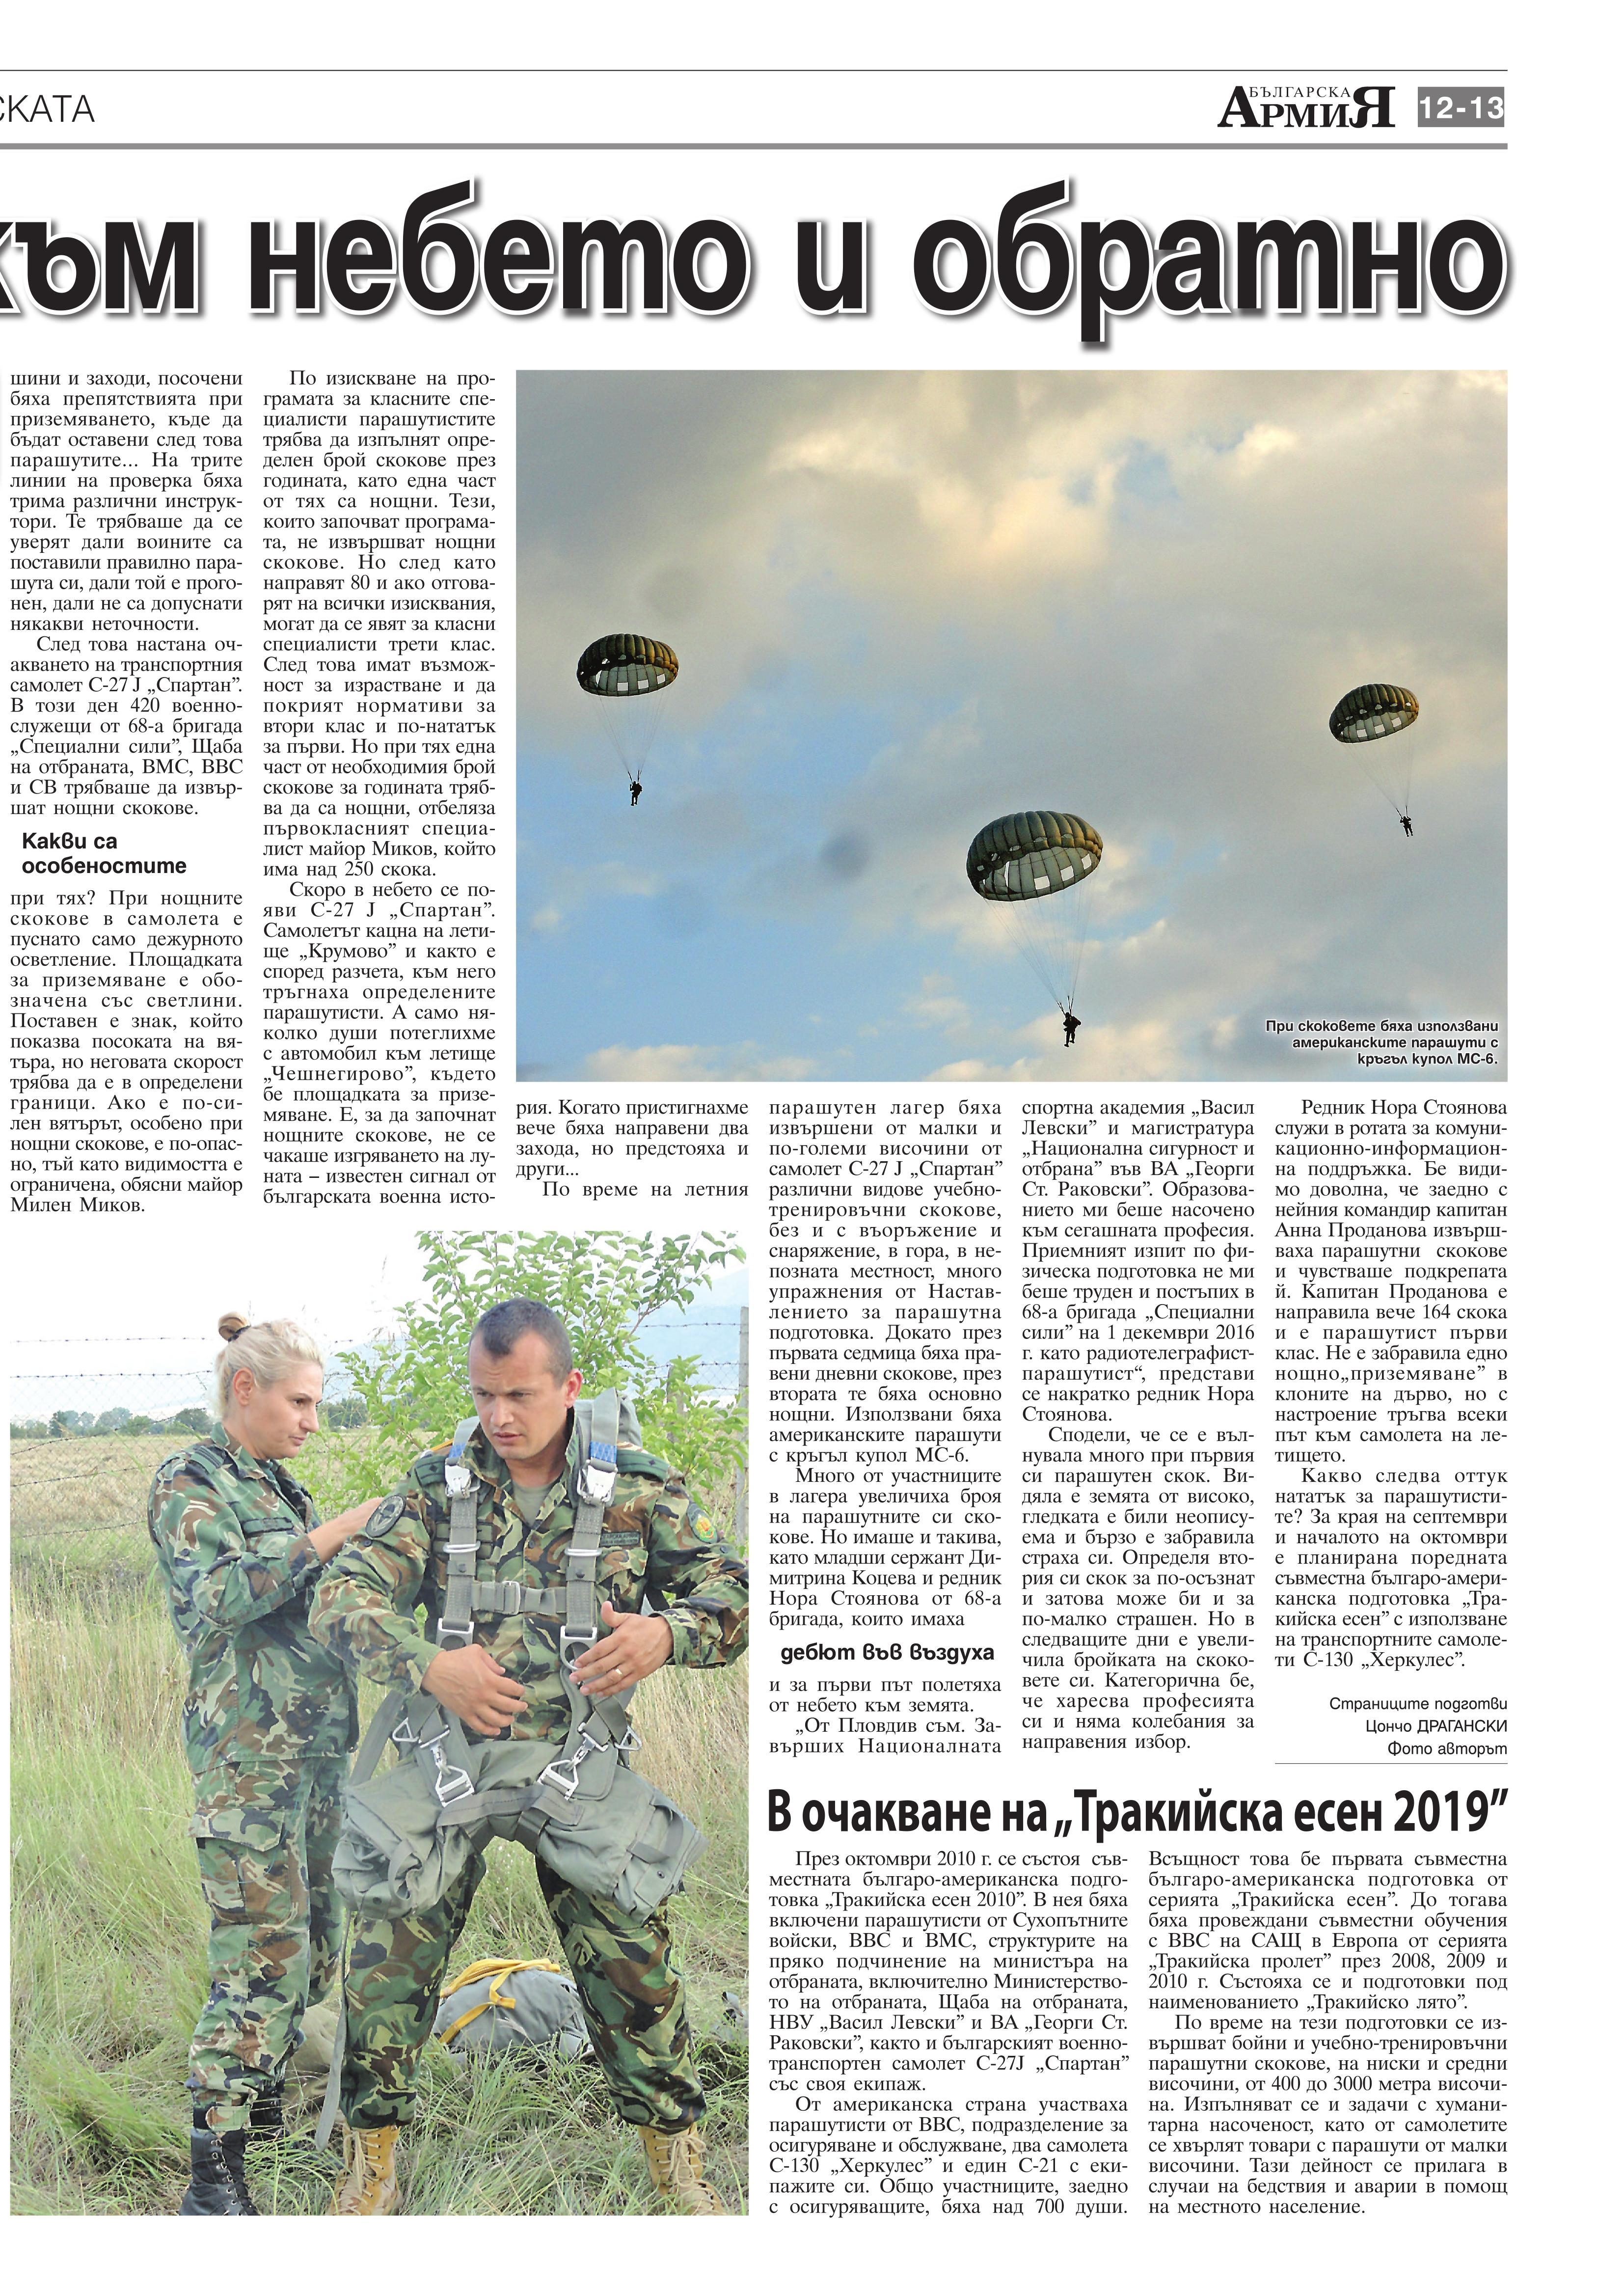 https://www.armymedia.bg/wp-content/uploads/2015/06/13.page1_-106.jpg